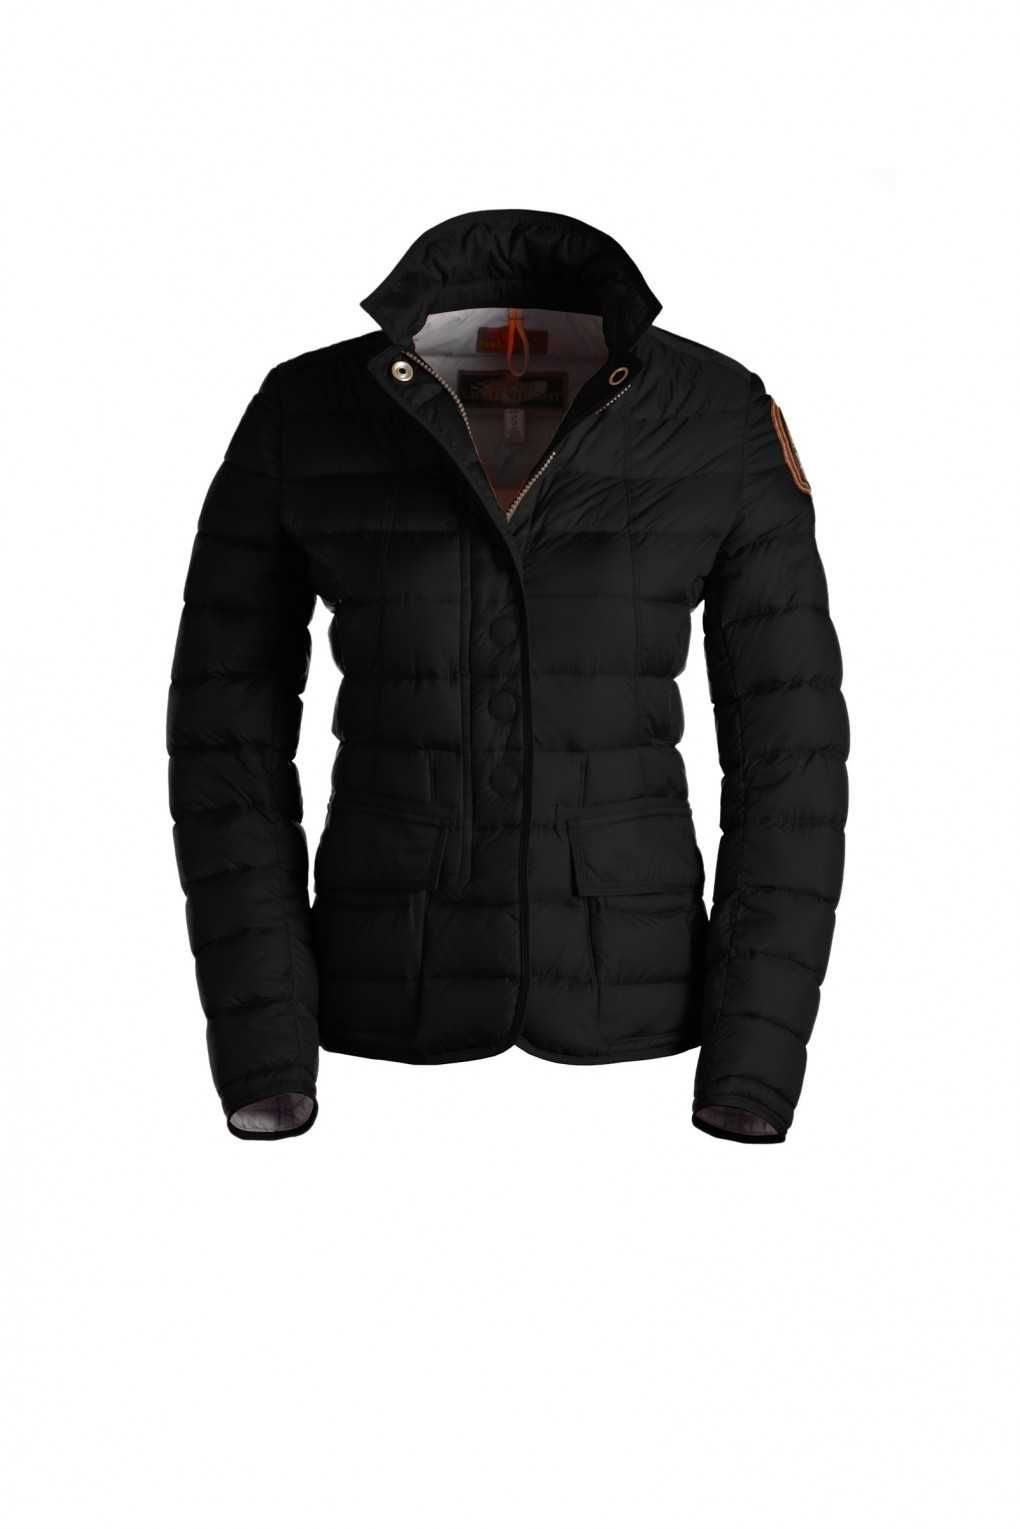 parajumpers discount